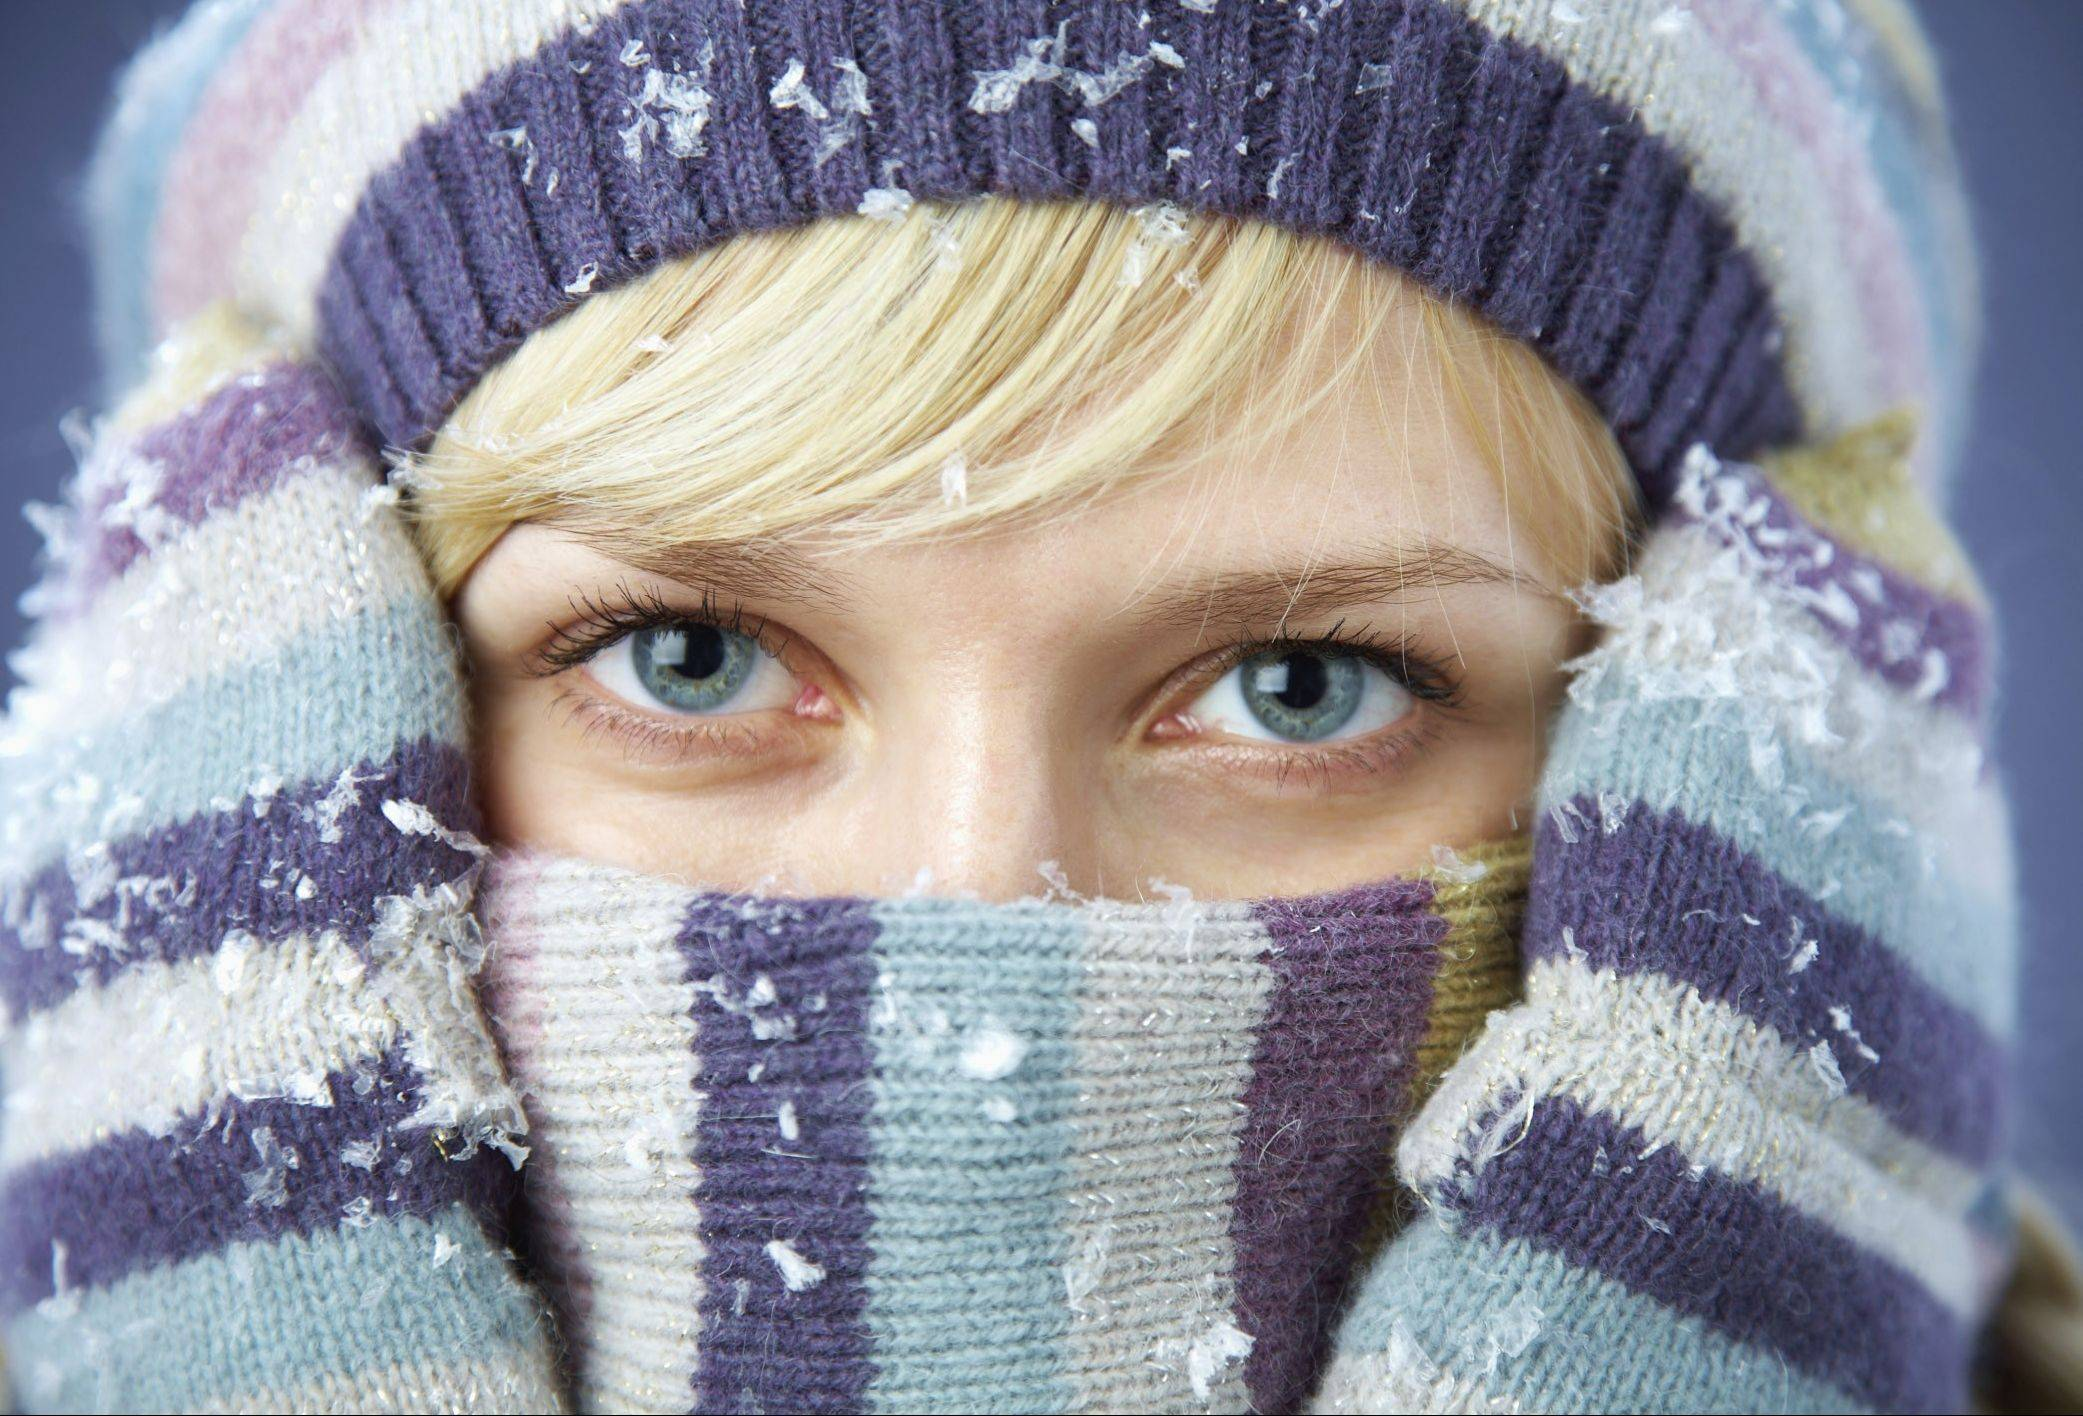 Winter is on its way. Is your body winterized?